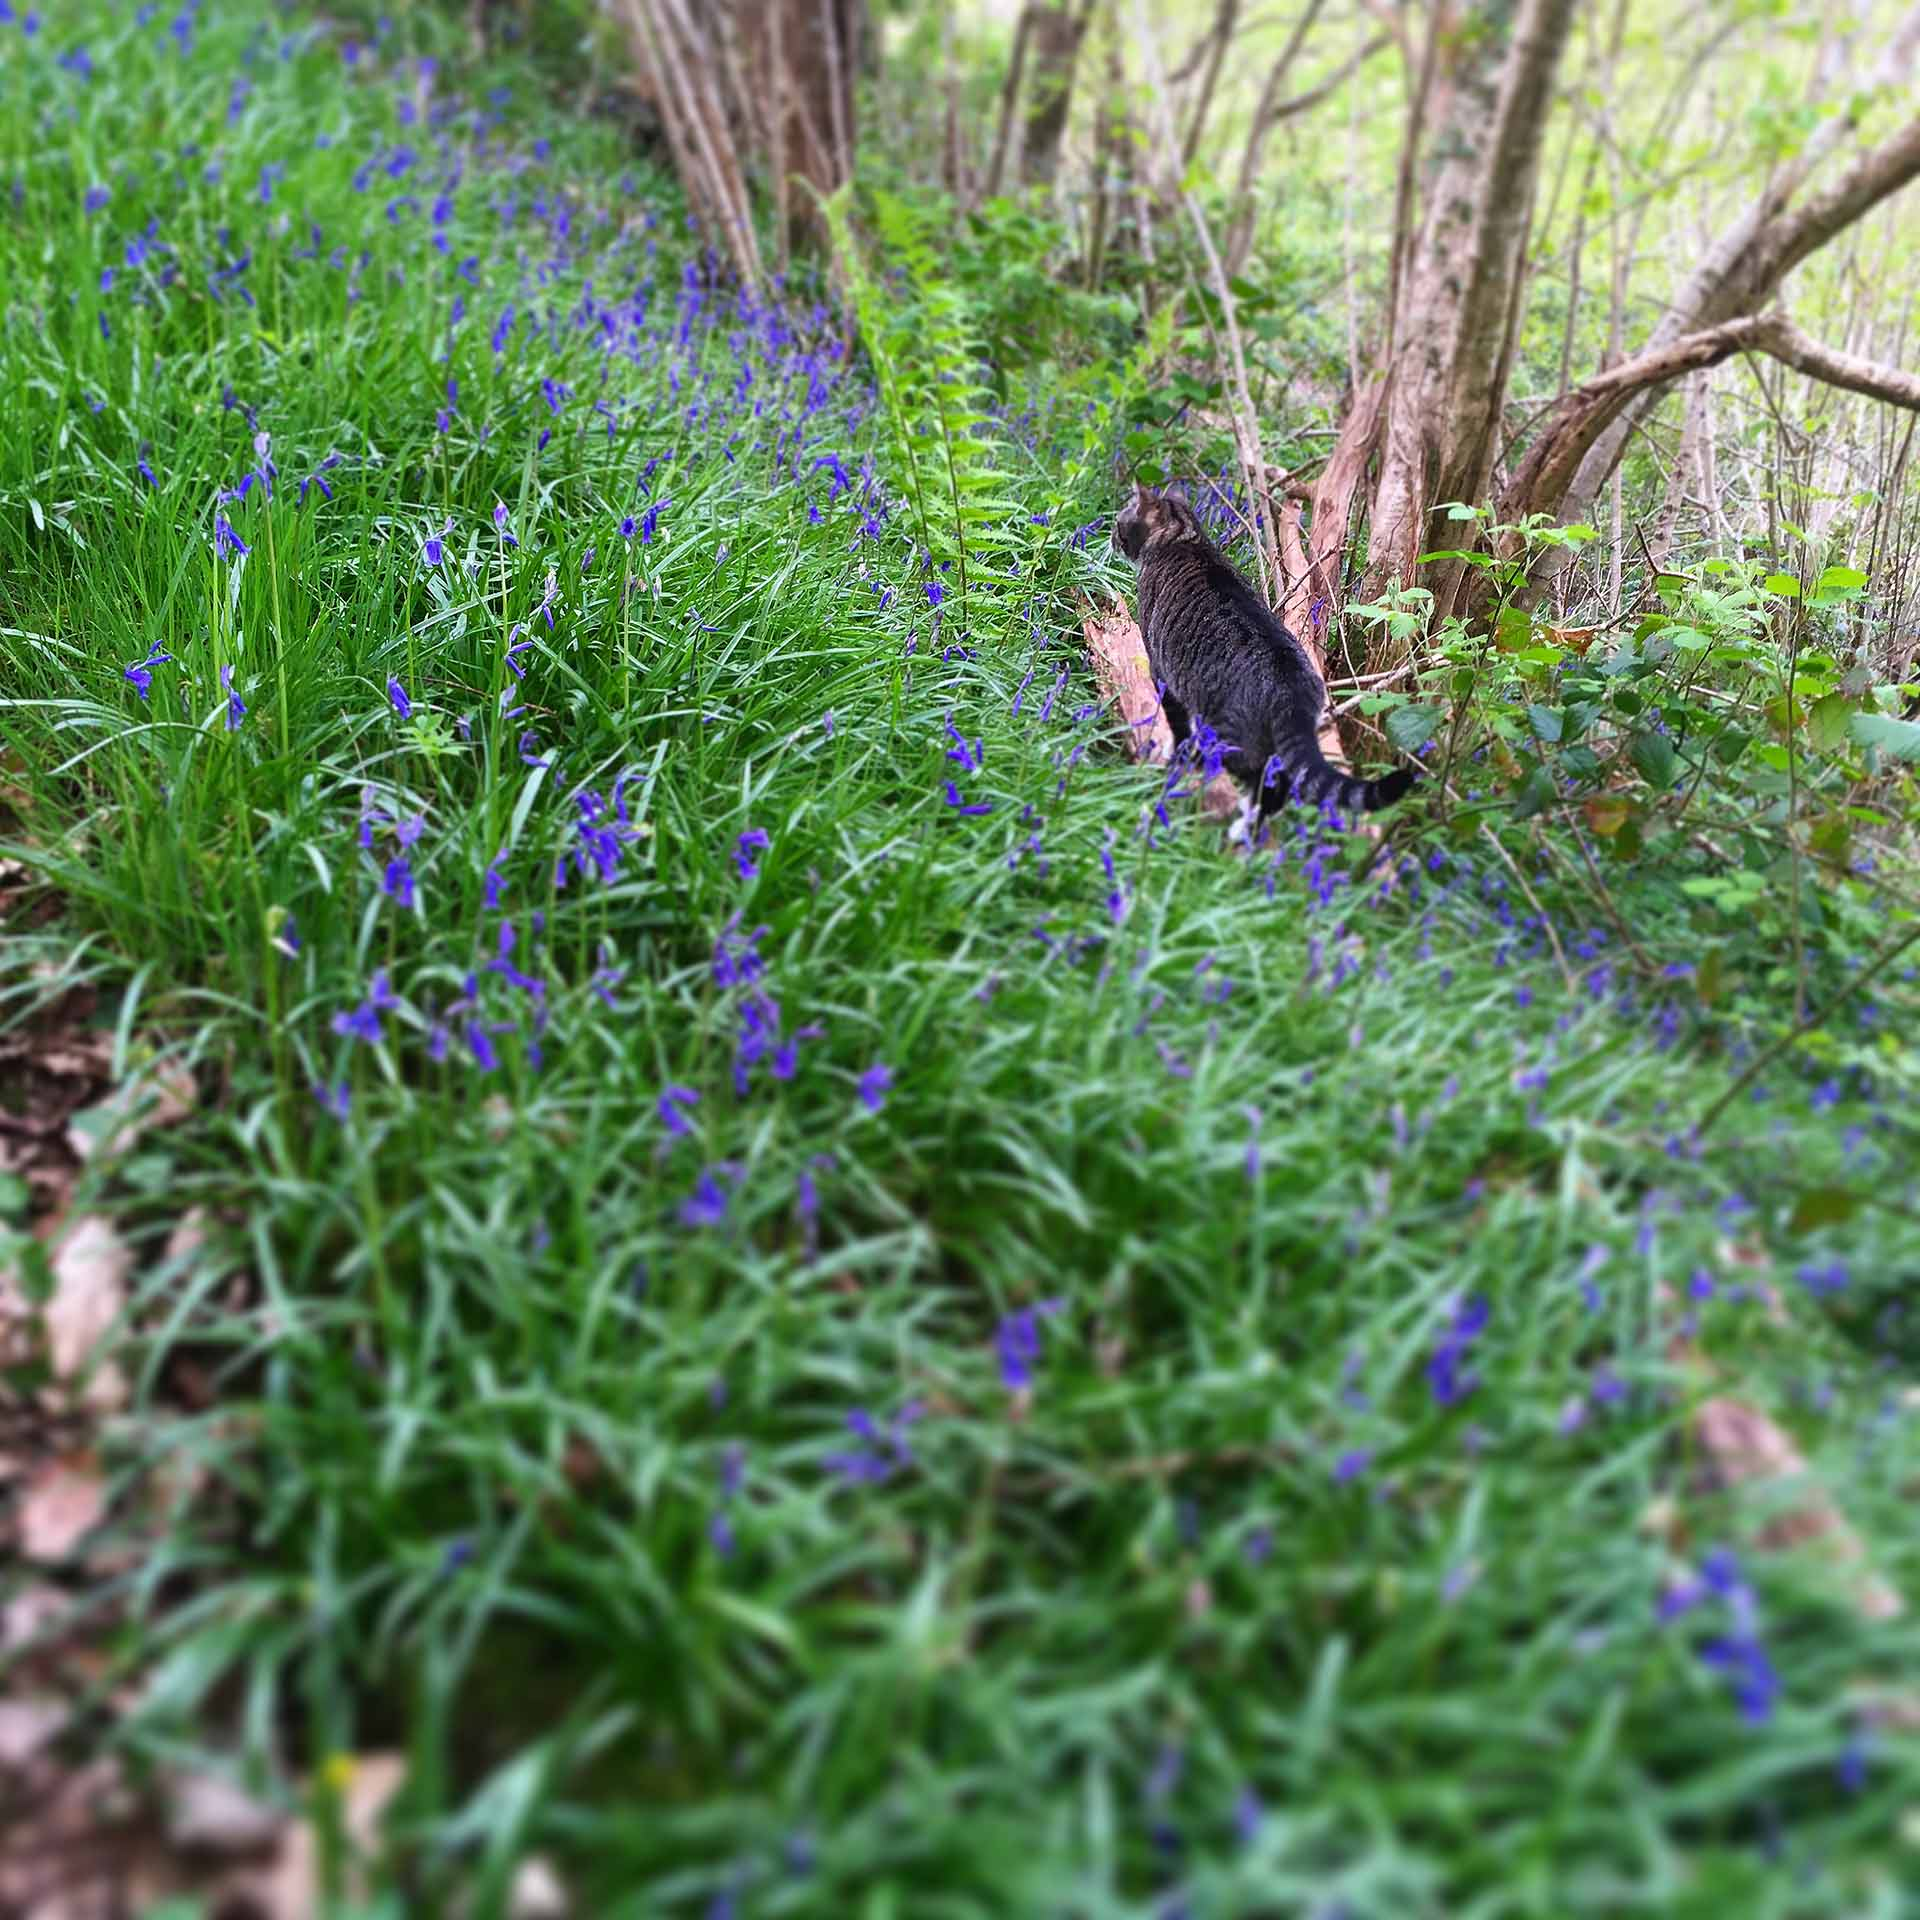 Ounce in the bluebells